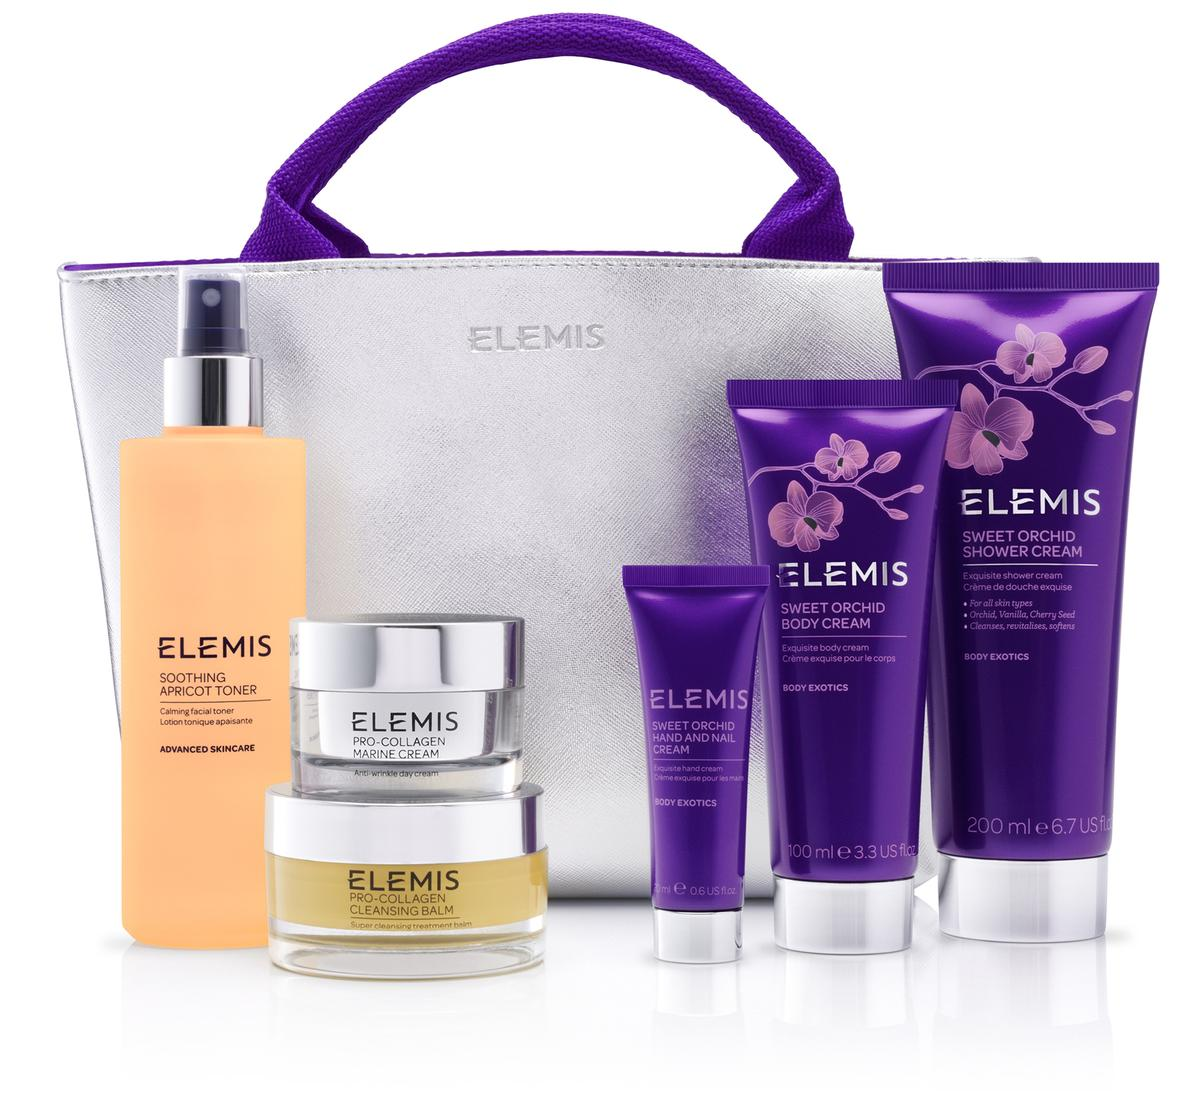 Elemis used QVC for the global launch of a new Sweet Orchard fragrance, which will only be available at QVC UK until May 2016 / Elemis